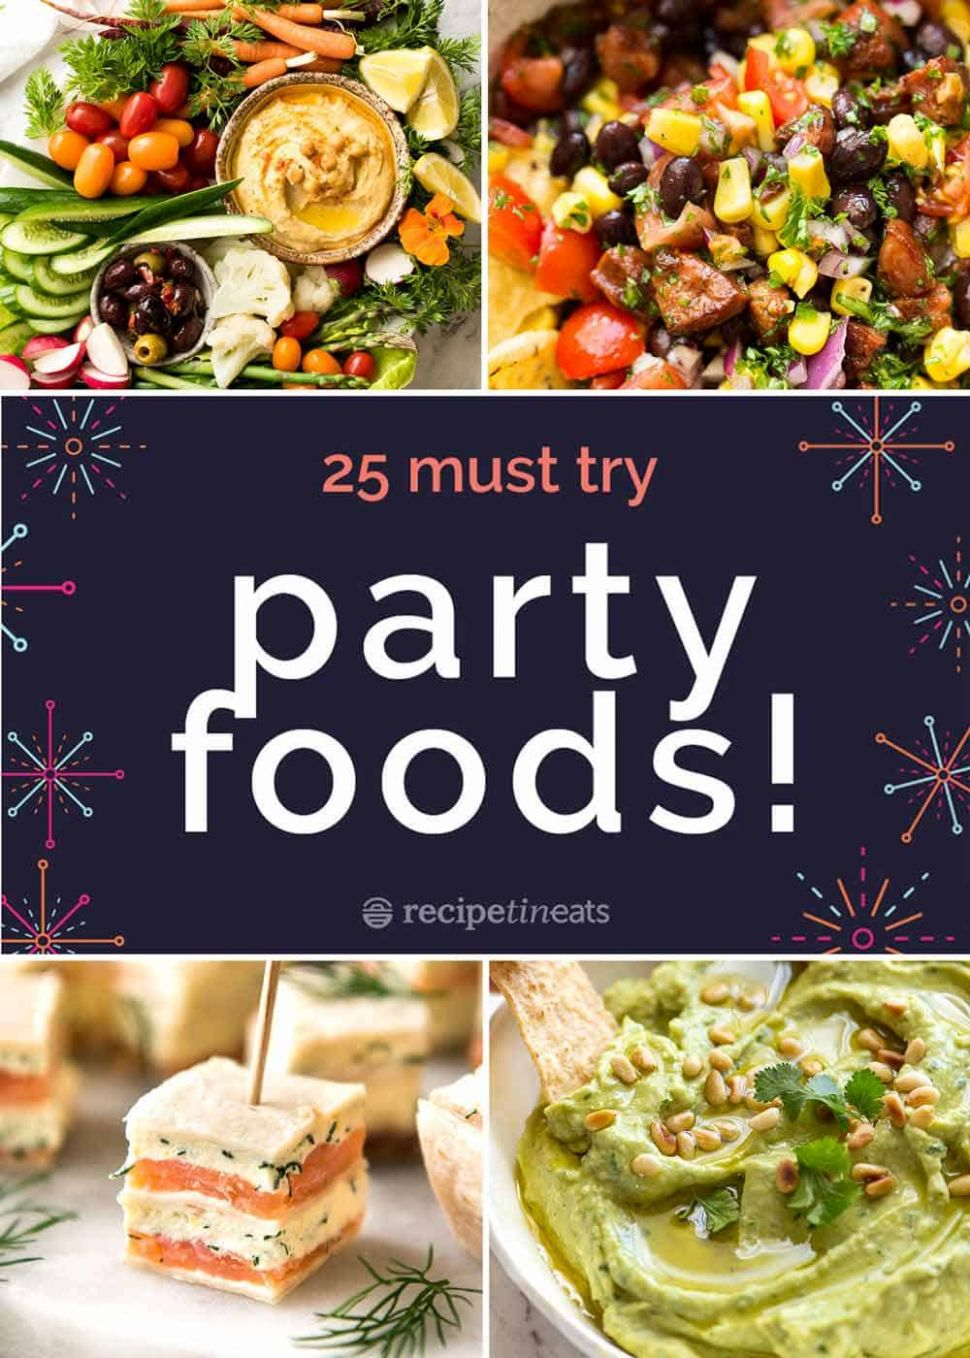 10 BEST Party Food Recipes! - Food Recipes Photos